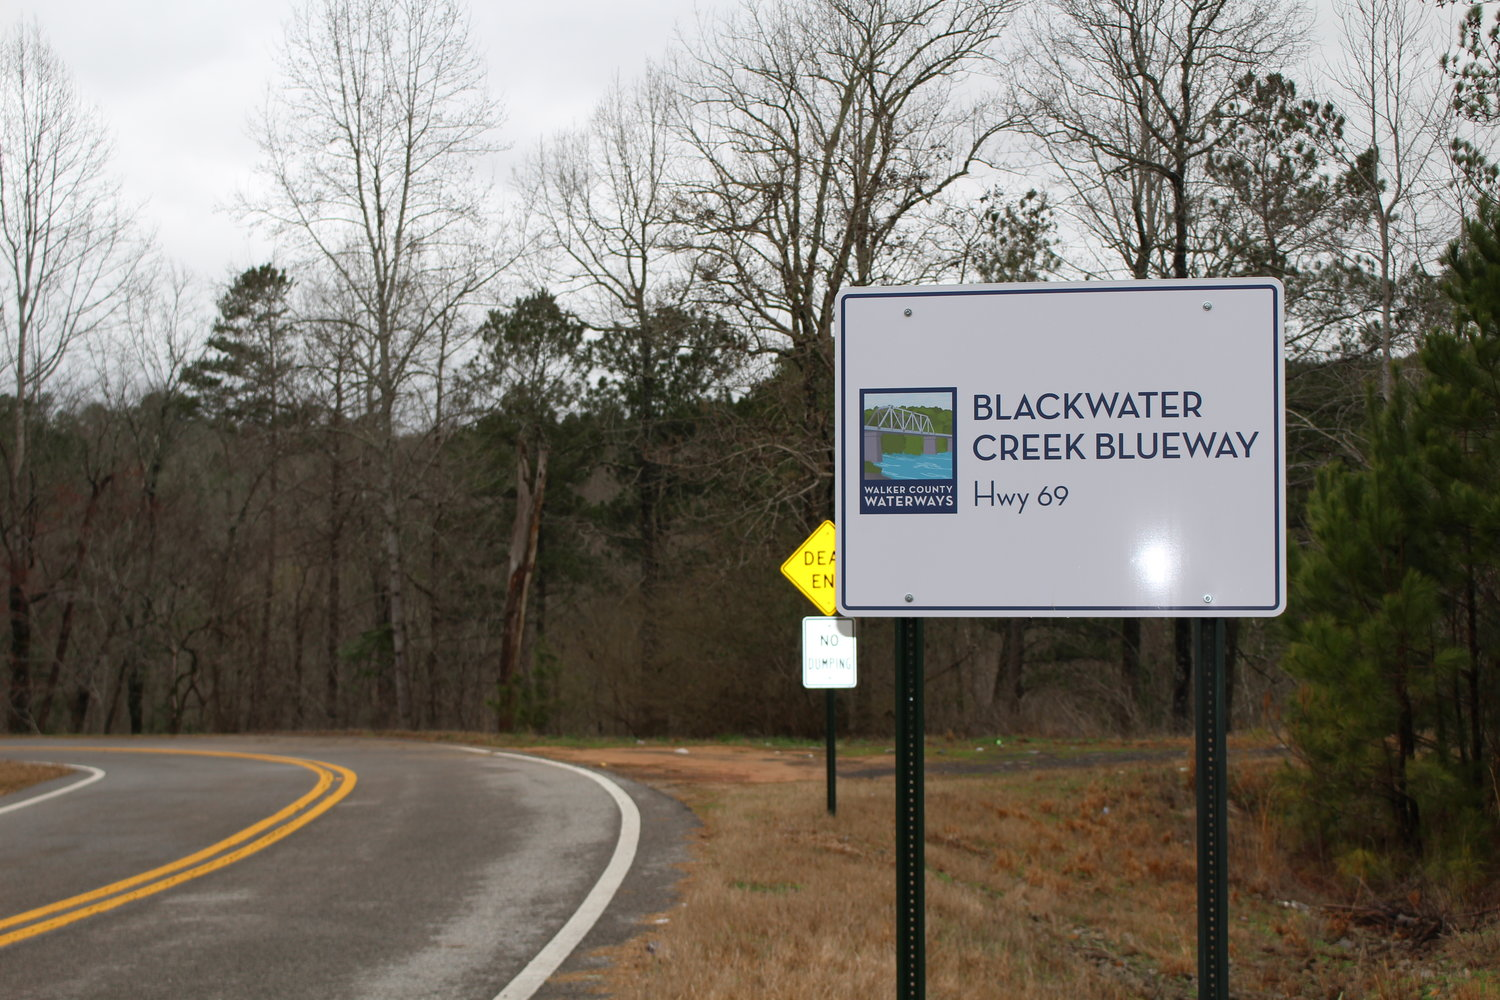 New signs are in place signaling the new Blackwater Creek access point along Highway 69.